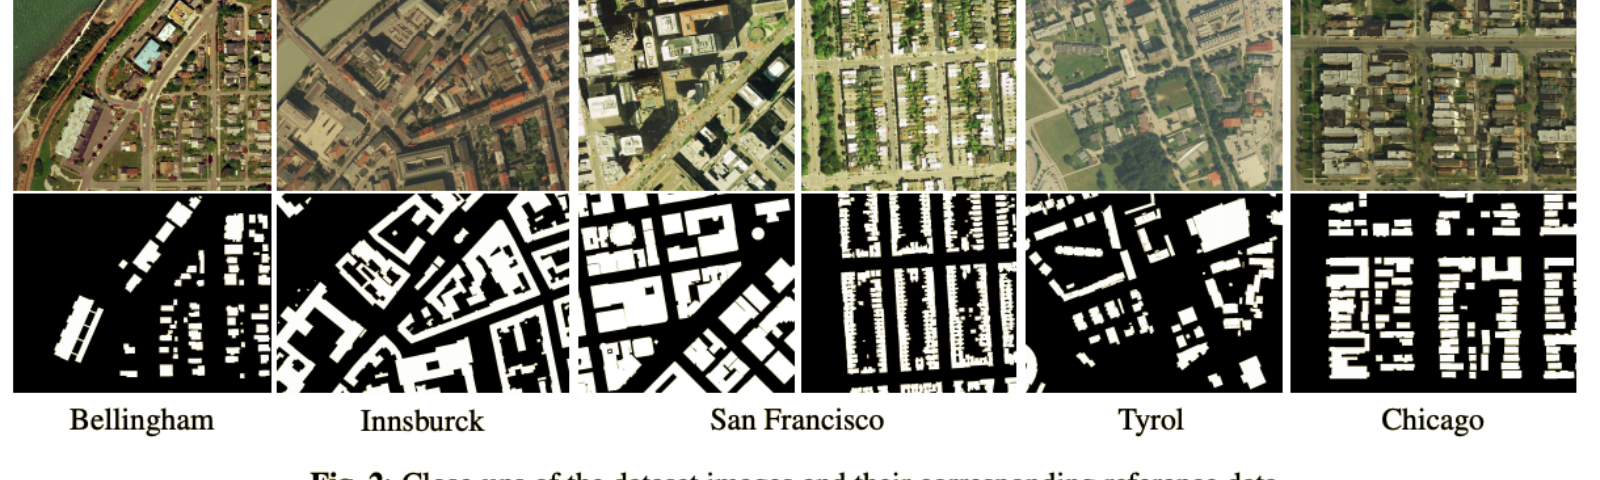 Semantic Segmentation on Aerial Images using fastai